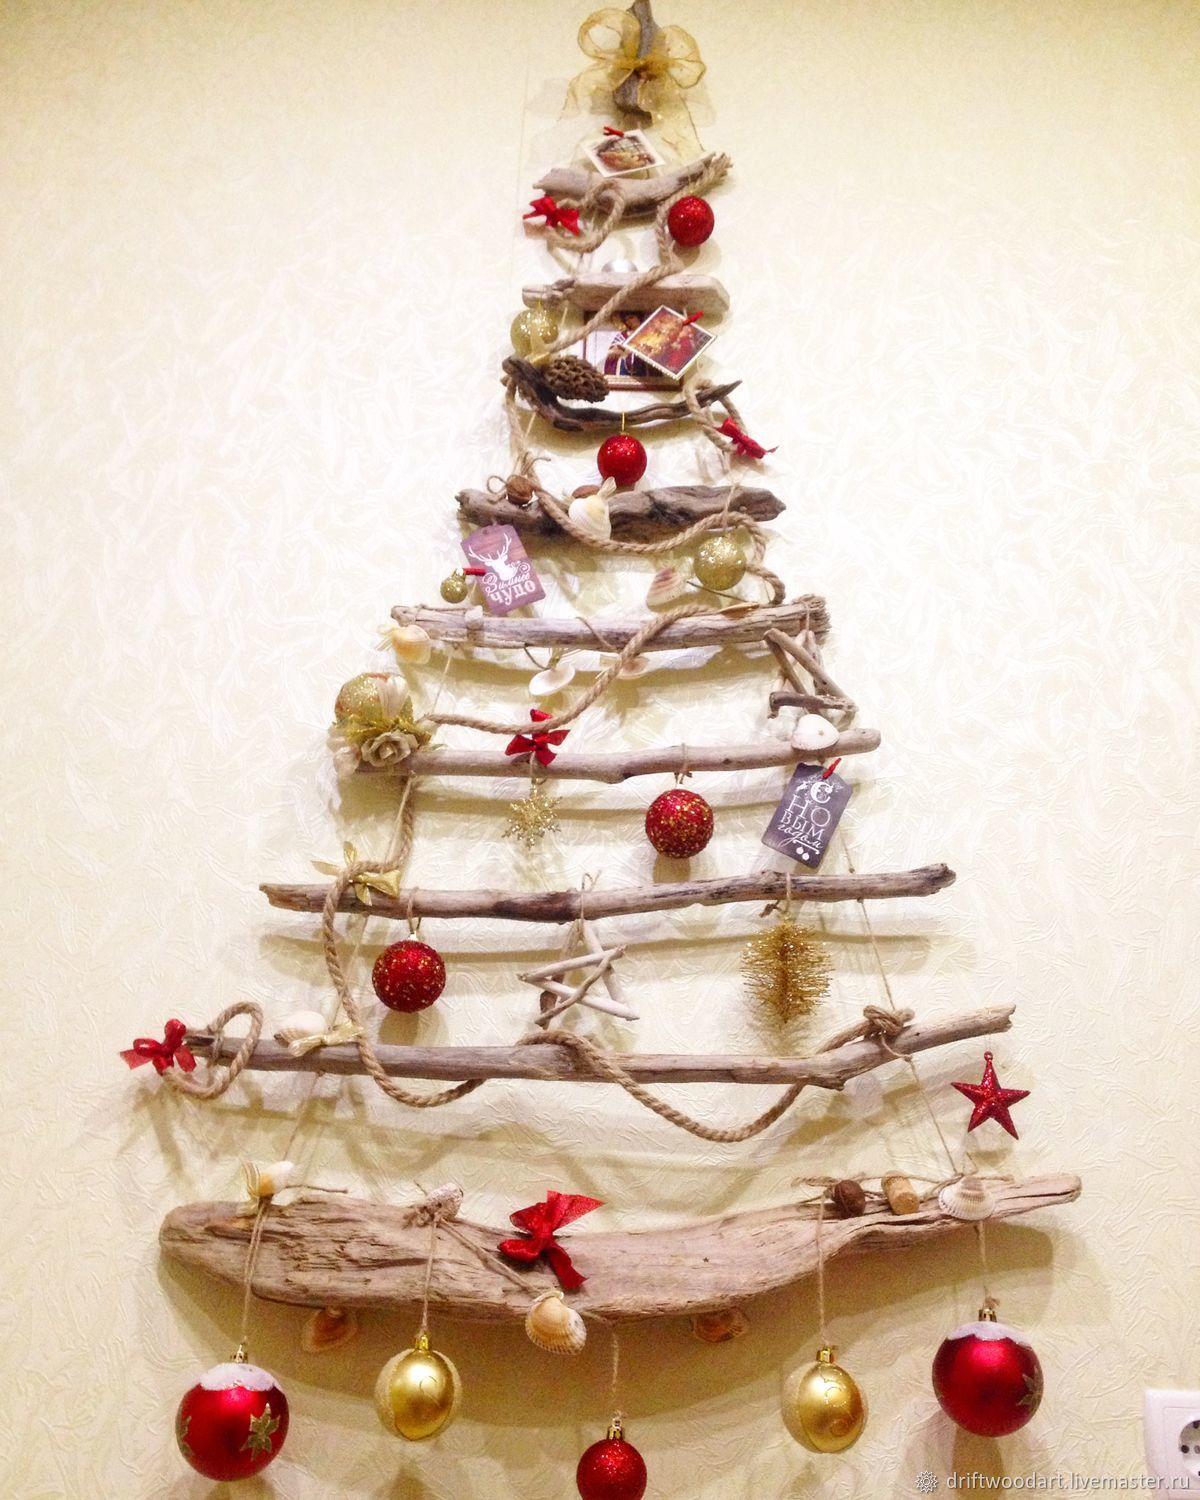 Christmas Tree Wall Christmas Tree Driftwood Shop Online On Livemaster With Shipping Armojcom Novorossiysk